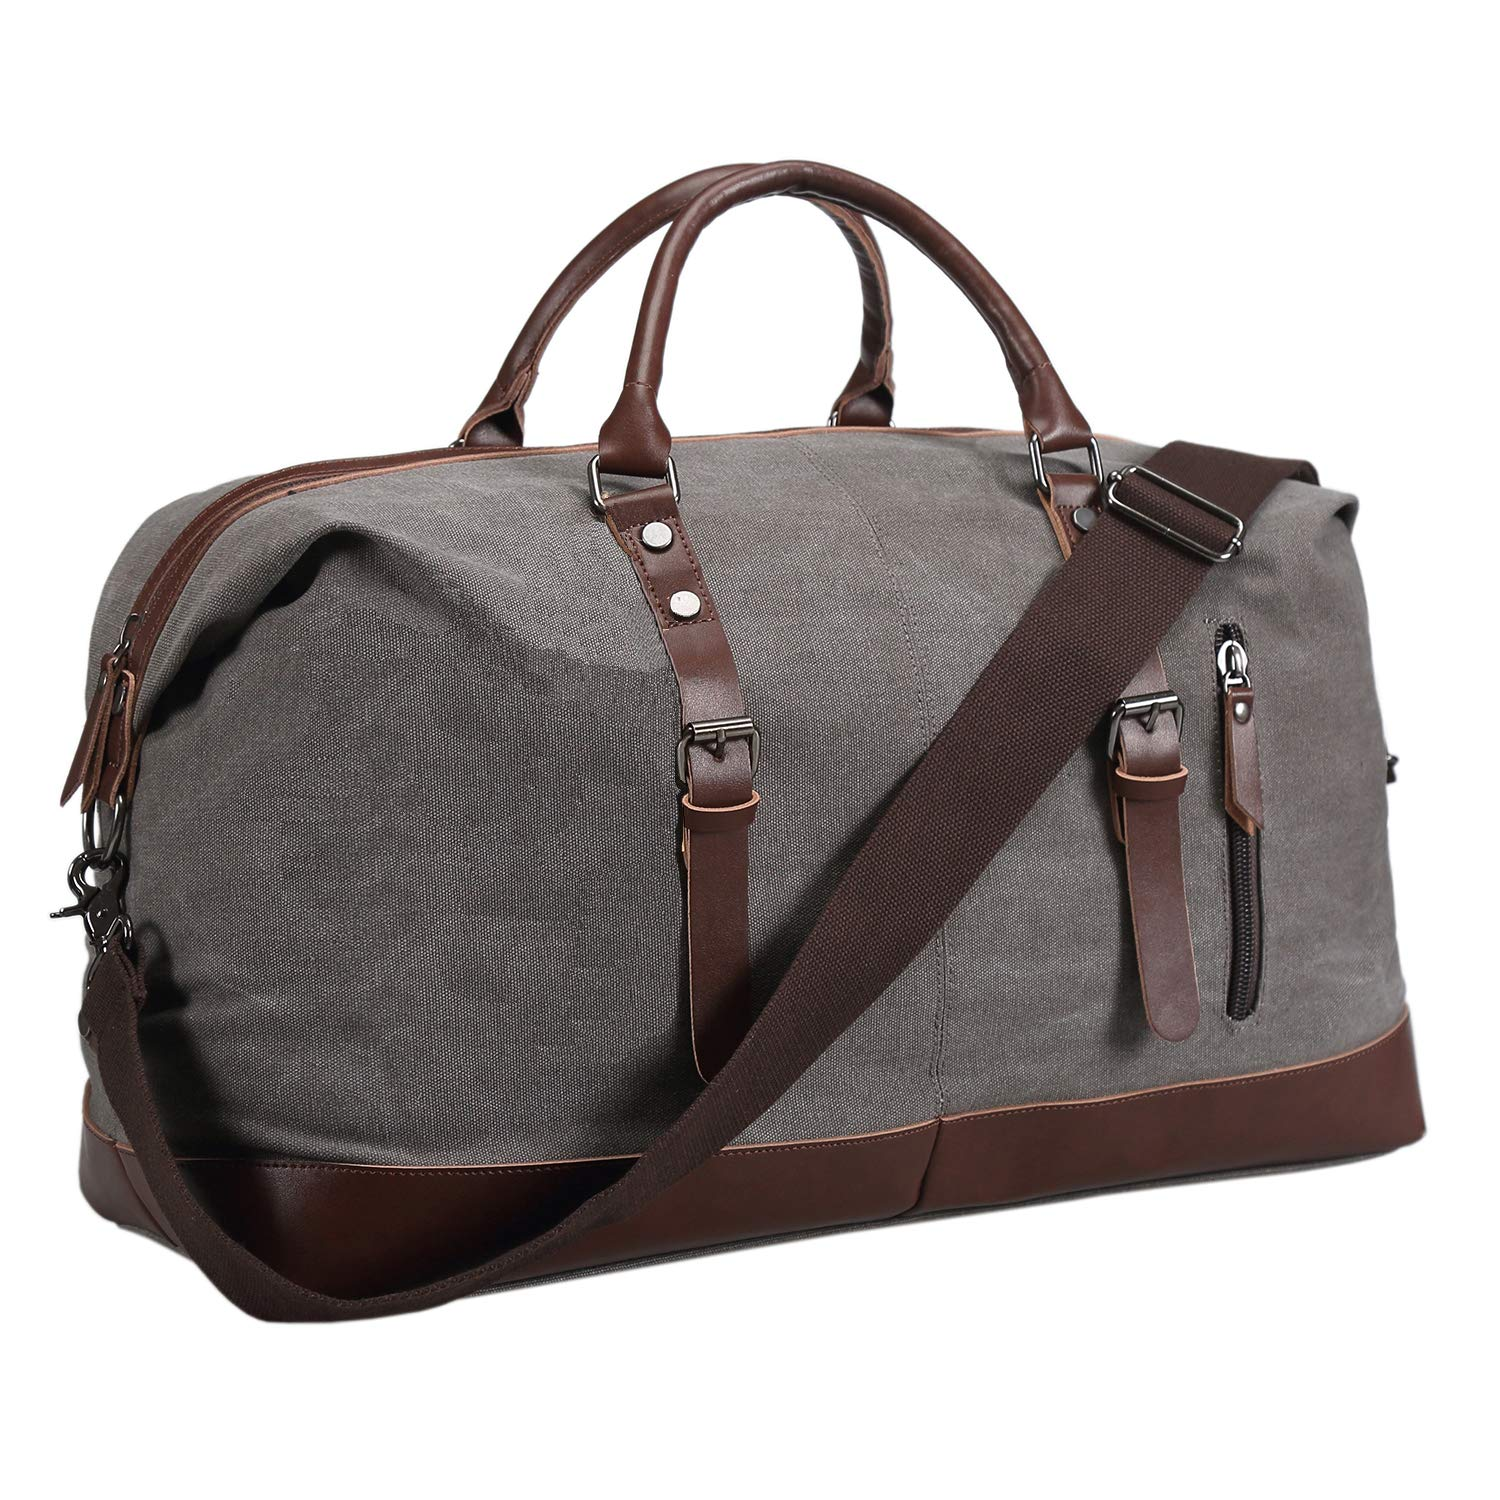 Ulgoo Duffel bag Oversized Canvas Travel Bag PU Leather Weekend Bag Overnight (Grey) by Ulgoo